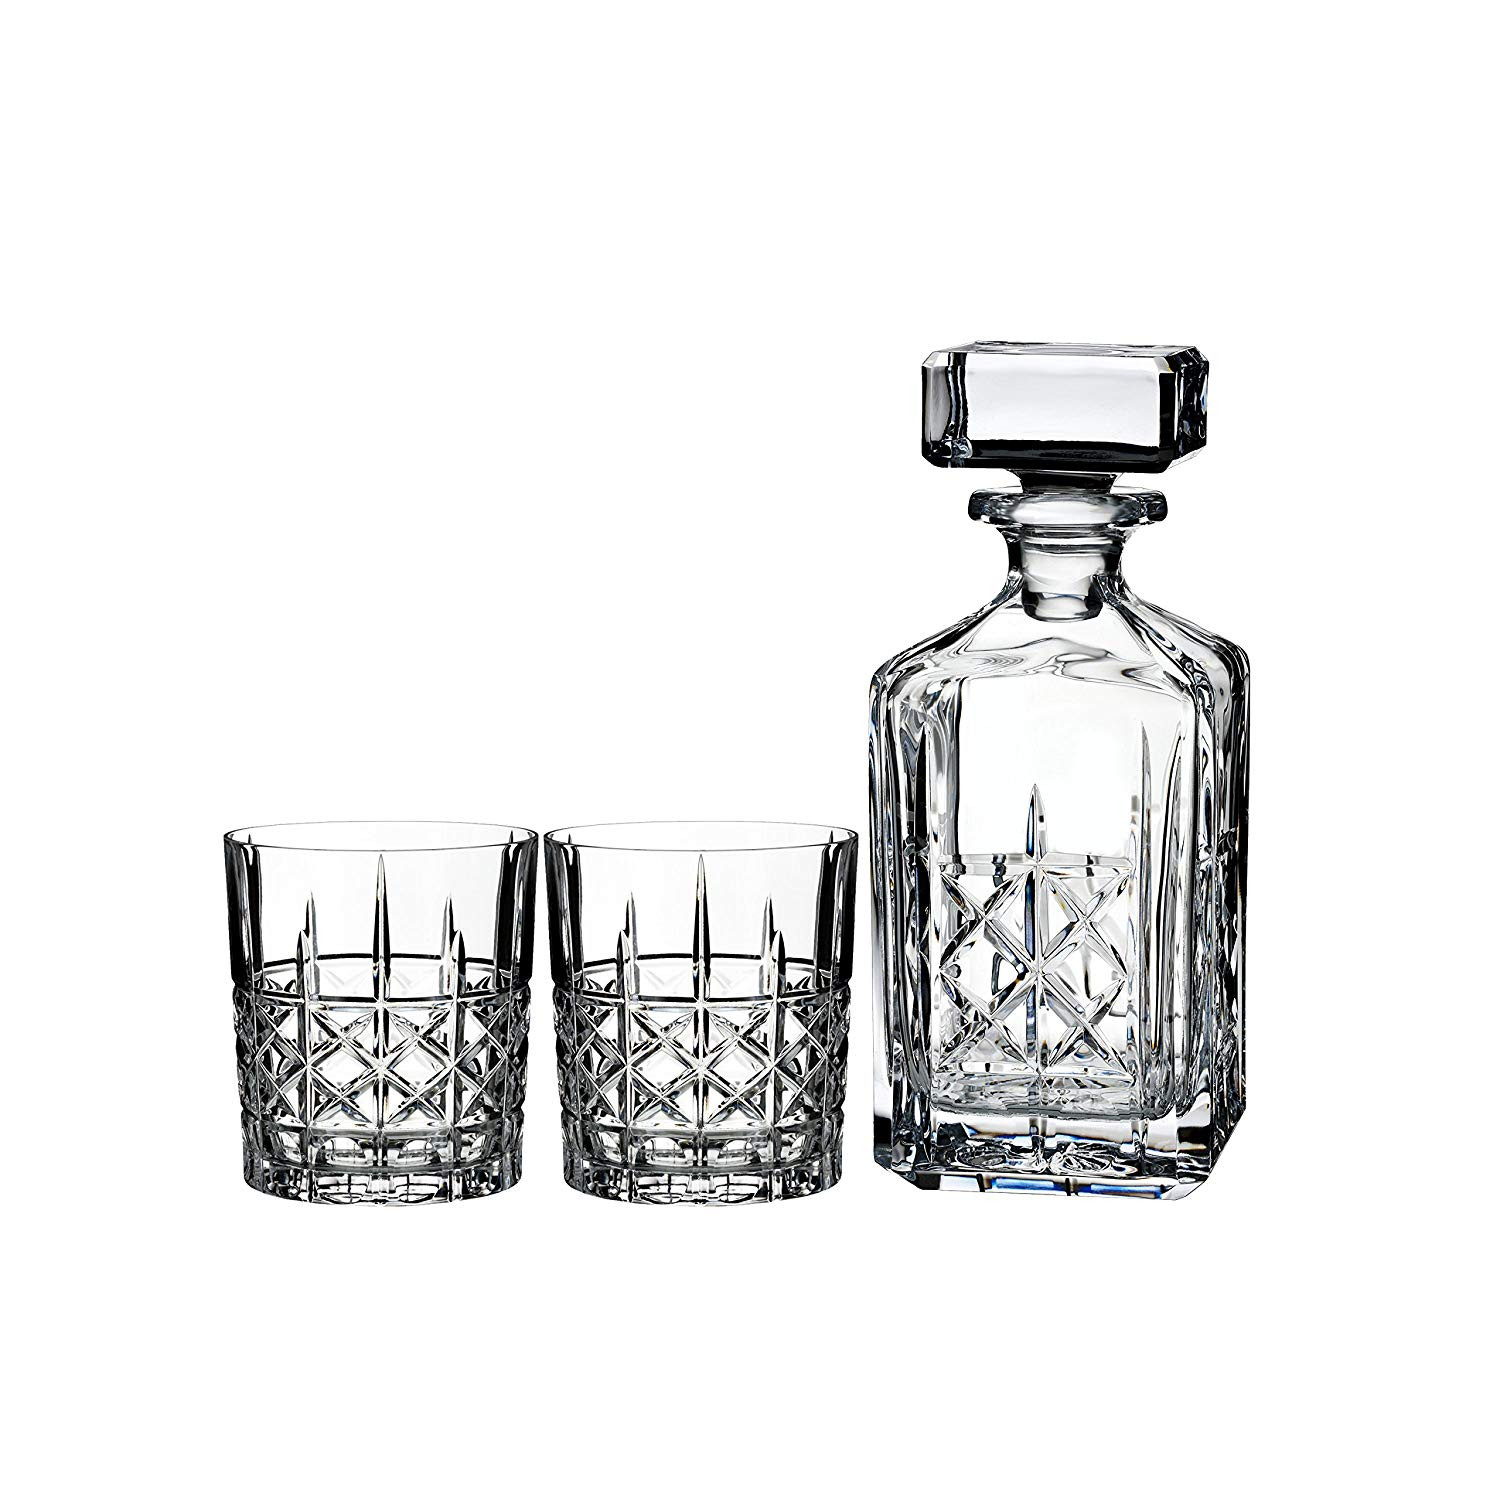 waterford crystal vase 14 inch of amazon com marquis by waterford brady decanter 32 oz dof 11 oz throughout amazon com marquis by waterford brady decanter 32 oz dof 11 oz set 2 decanters